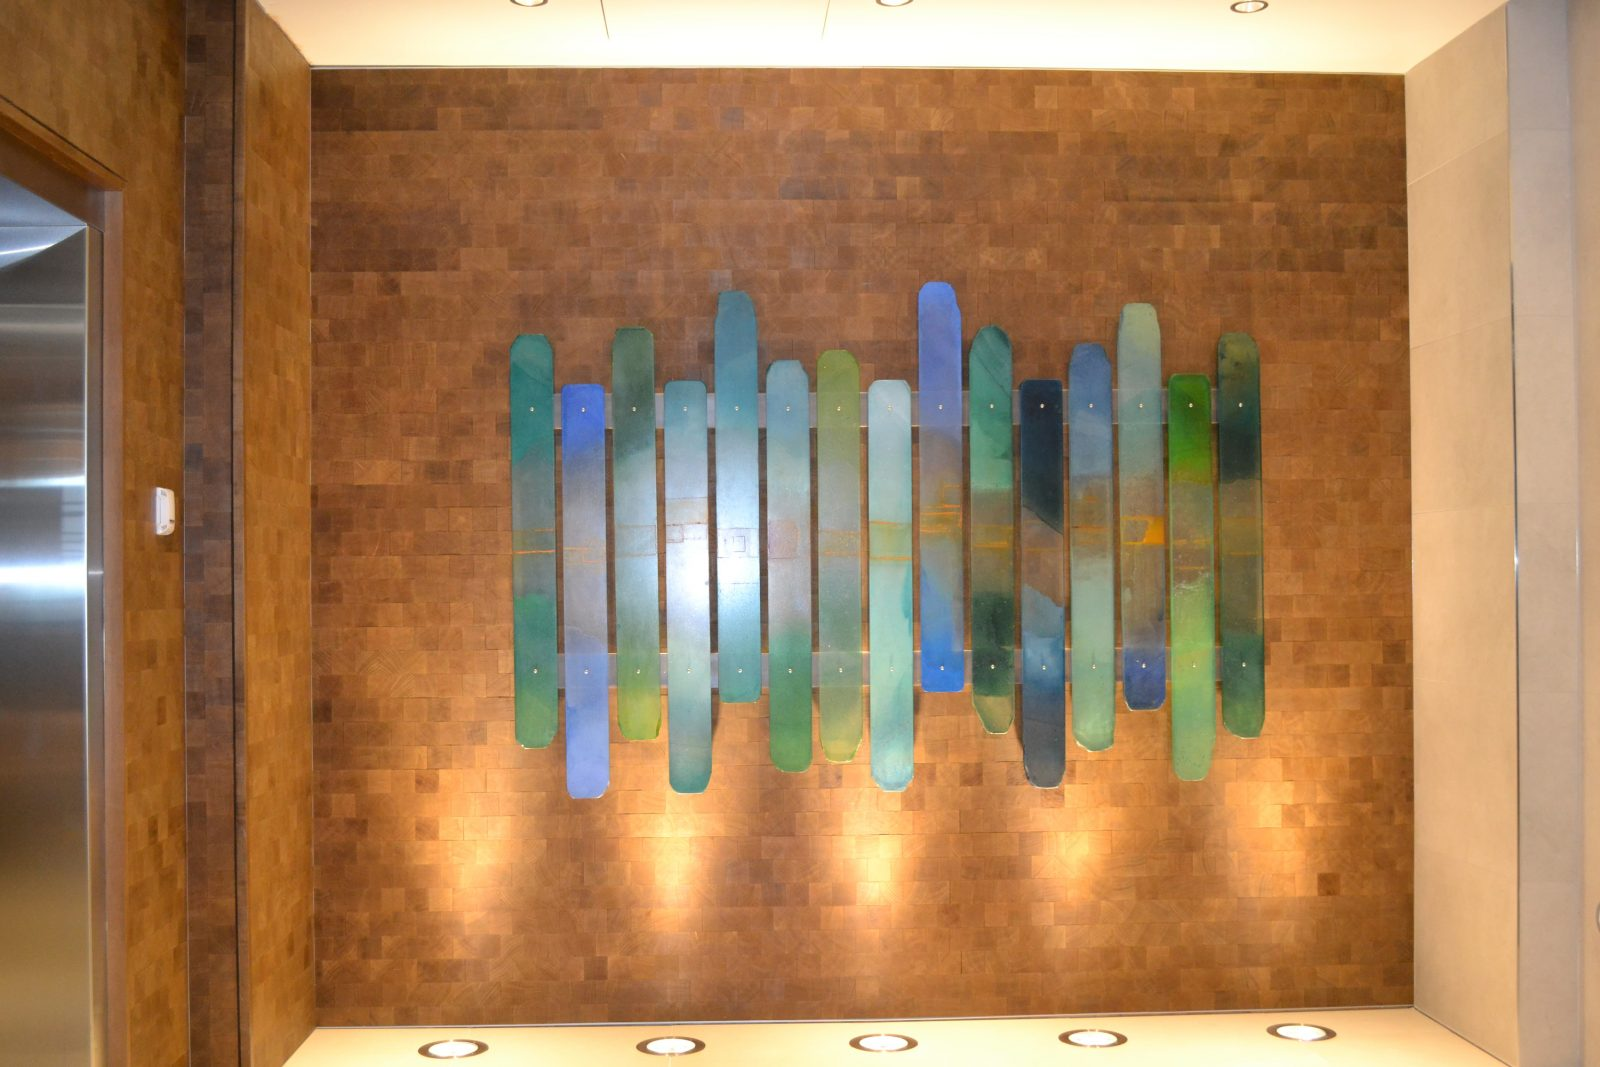 a piece of abstract artwork on the wall of a hotel